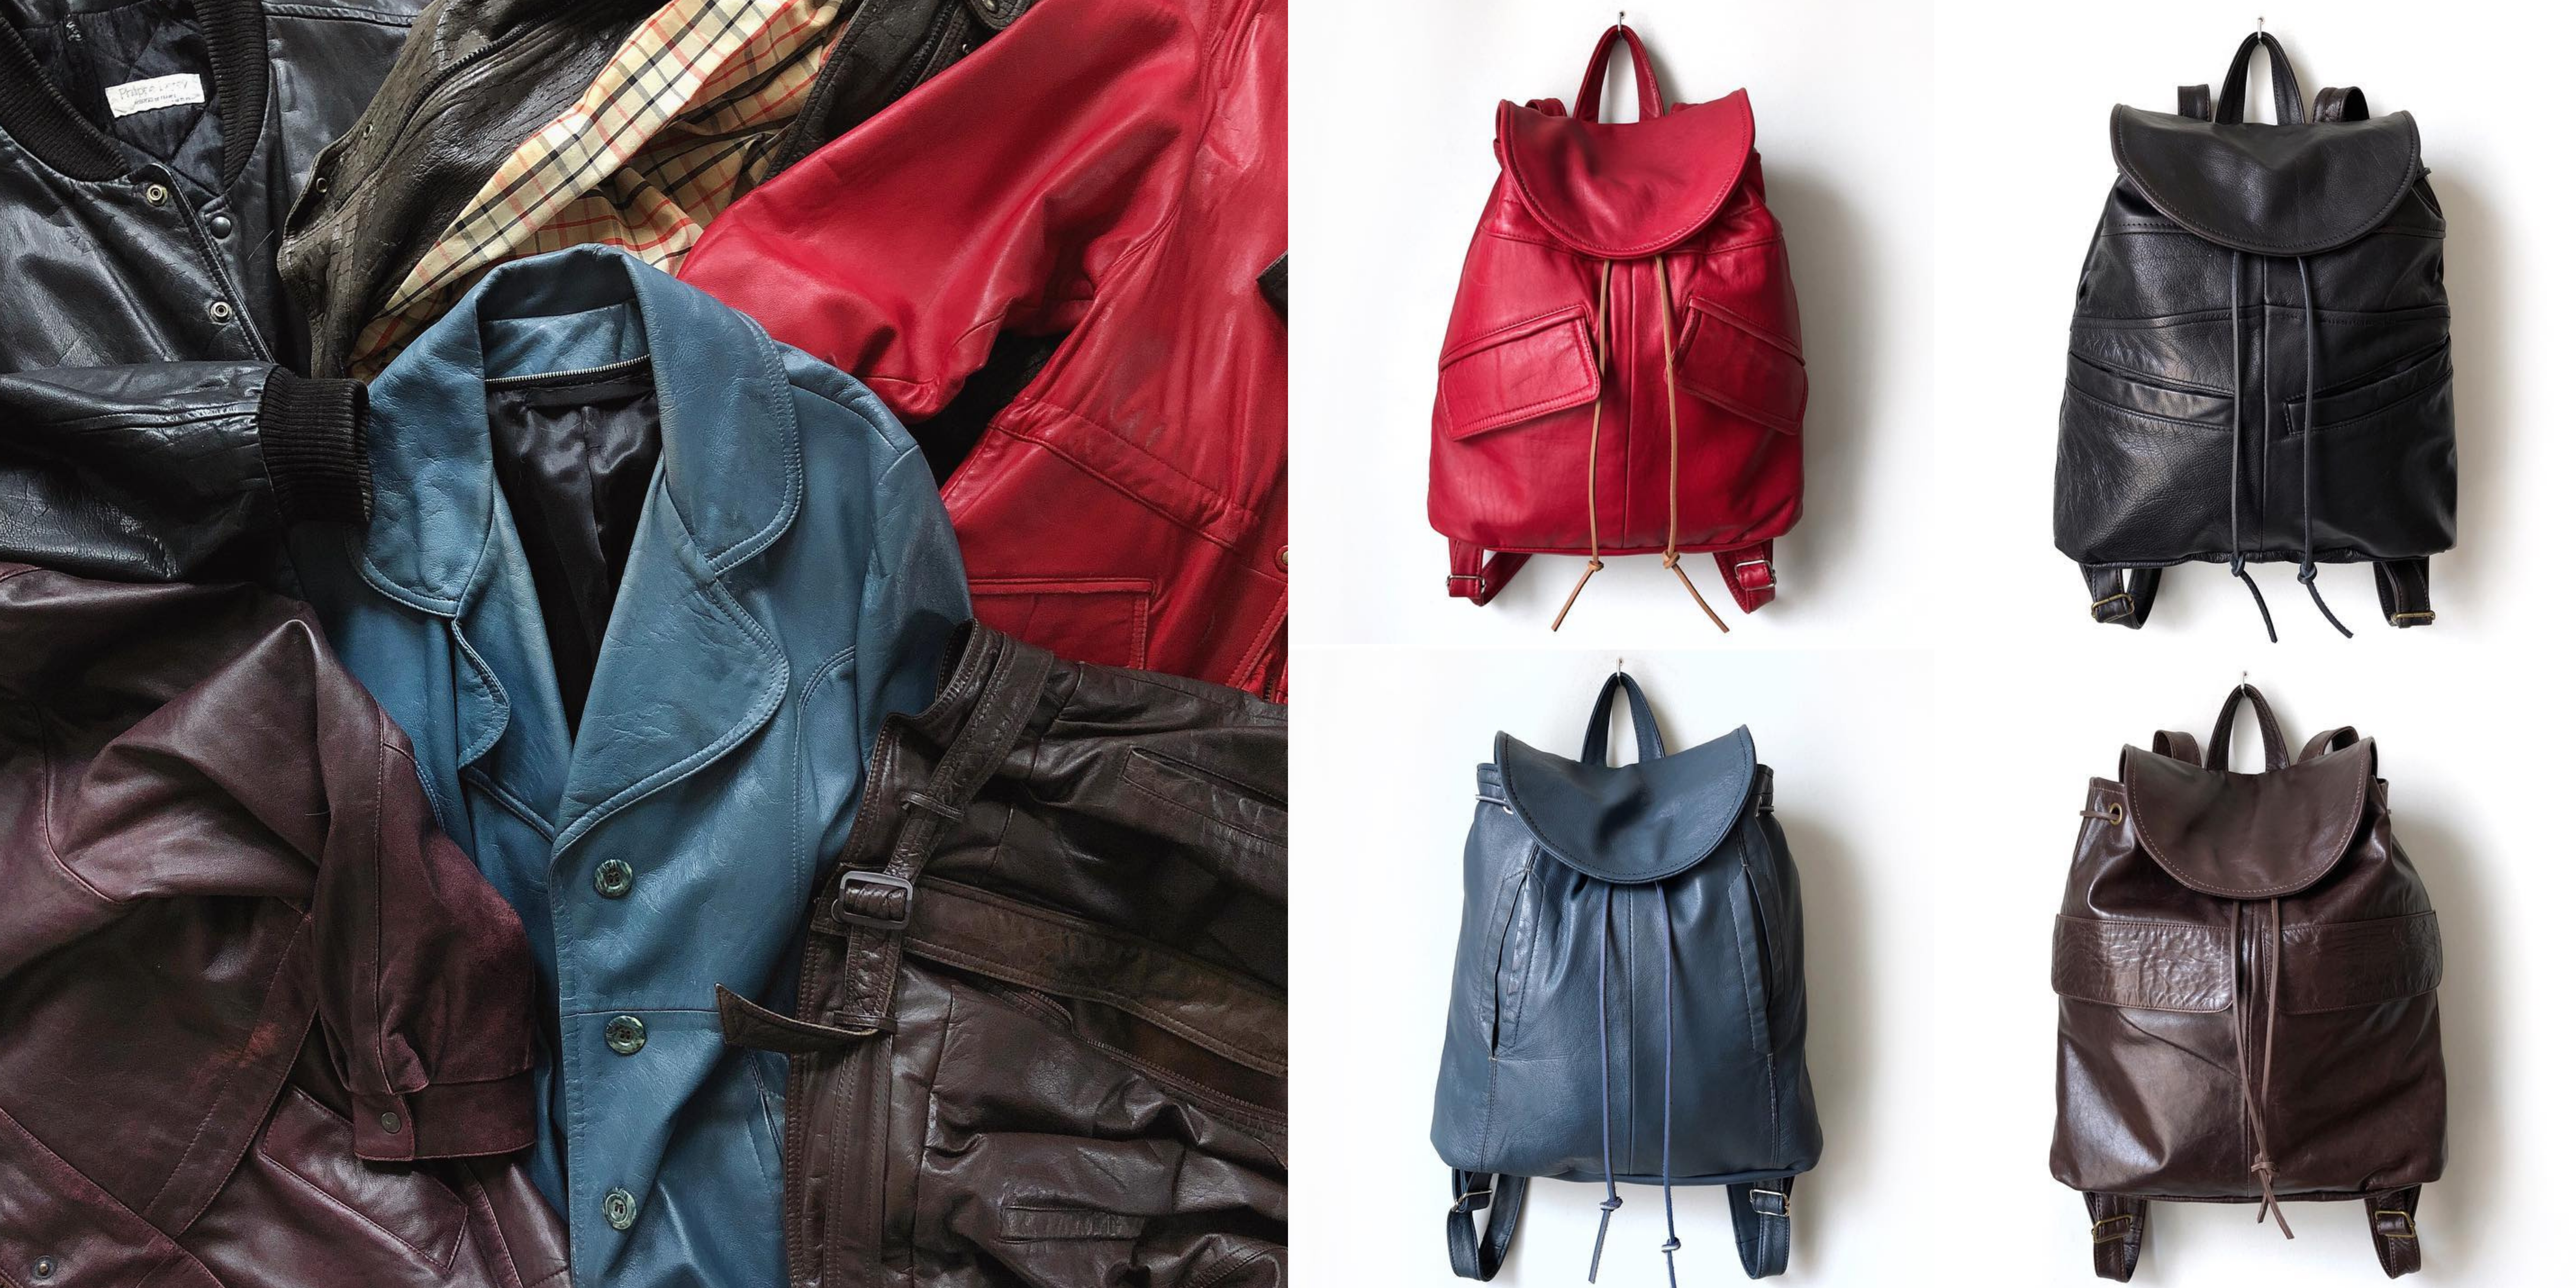 Image on left: A pile of leather coats Image on right four leather backpacks made by The COB Shop